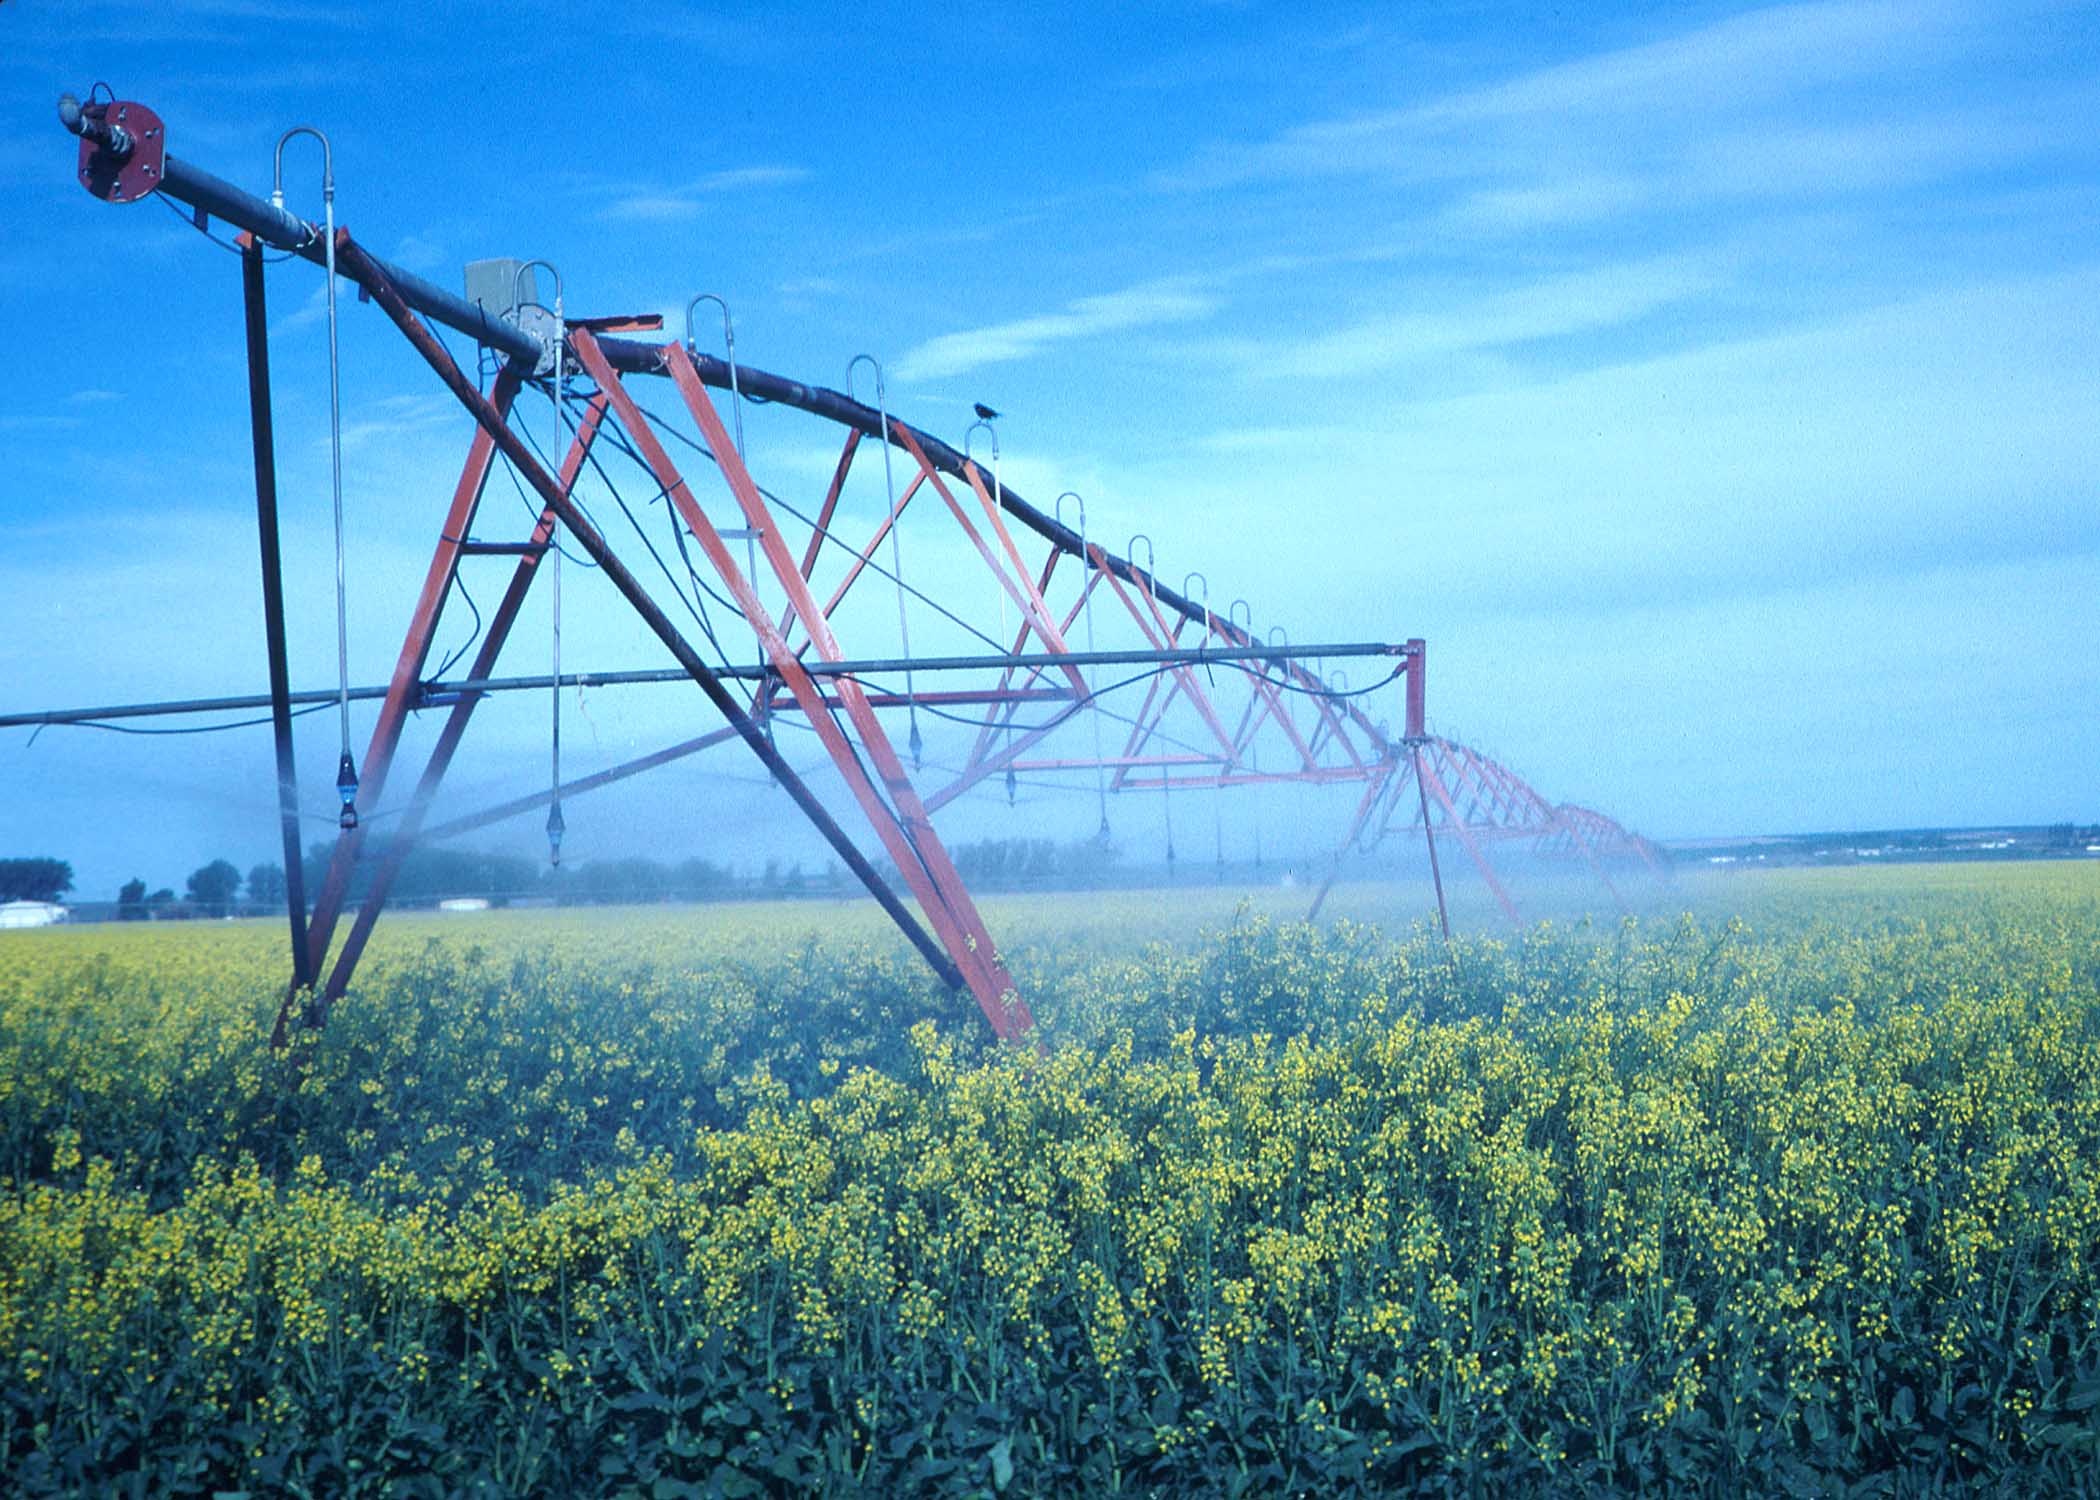 Center pivot irrigation system (courtesy of USDA, NRCS, Photo Gallery).